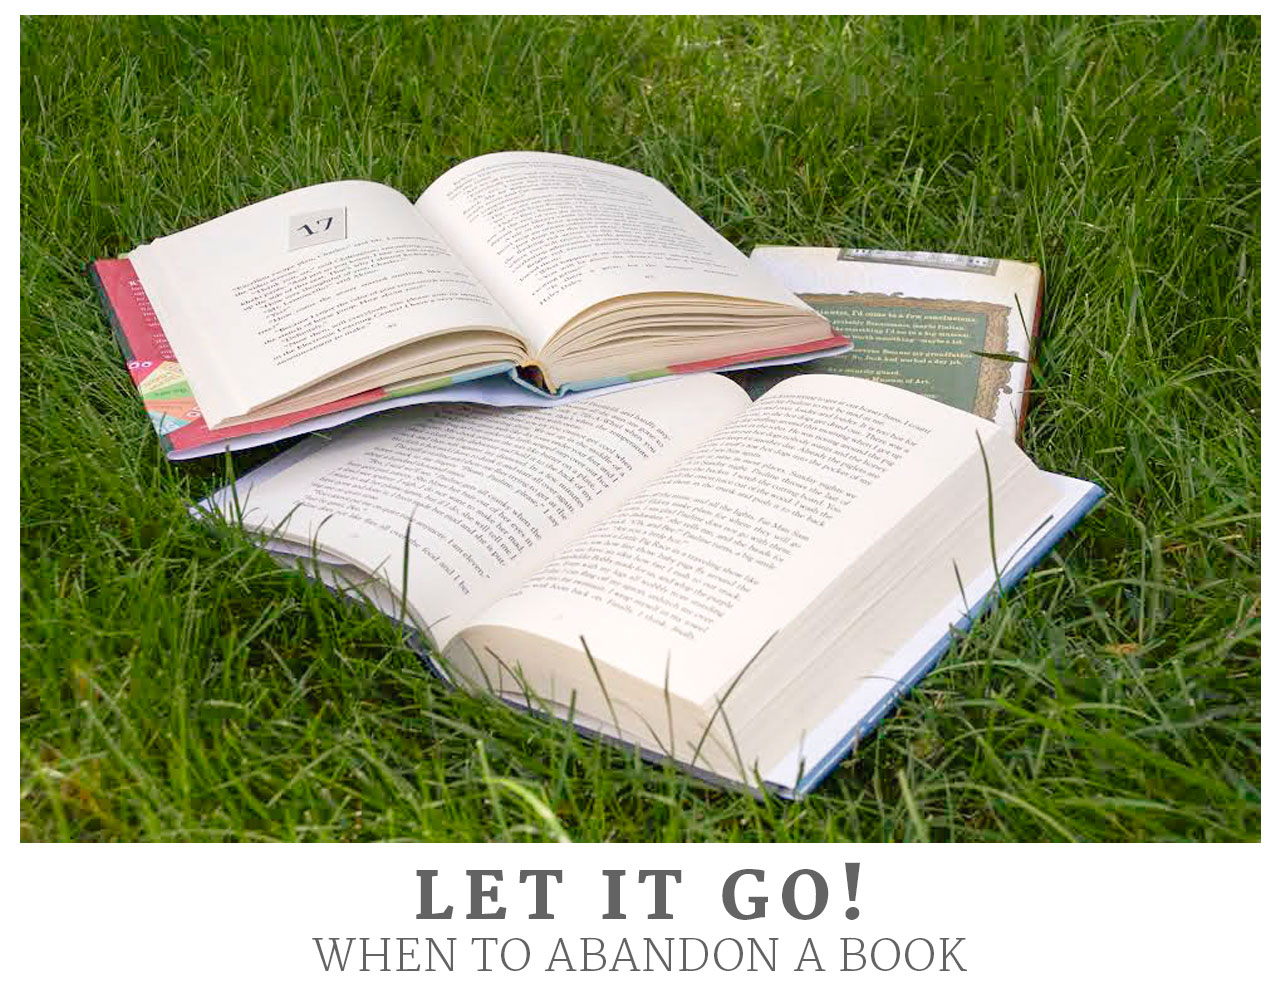 Let it Go! When to Abandon a Book